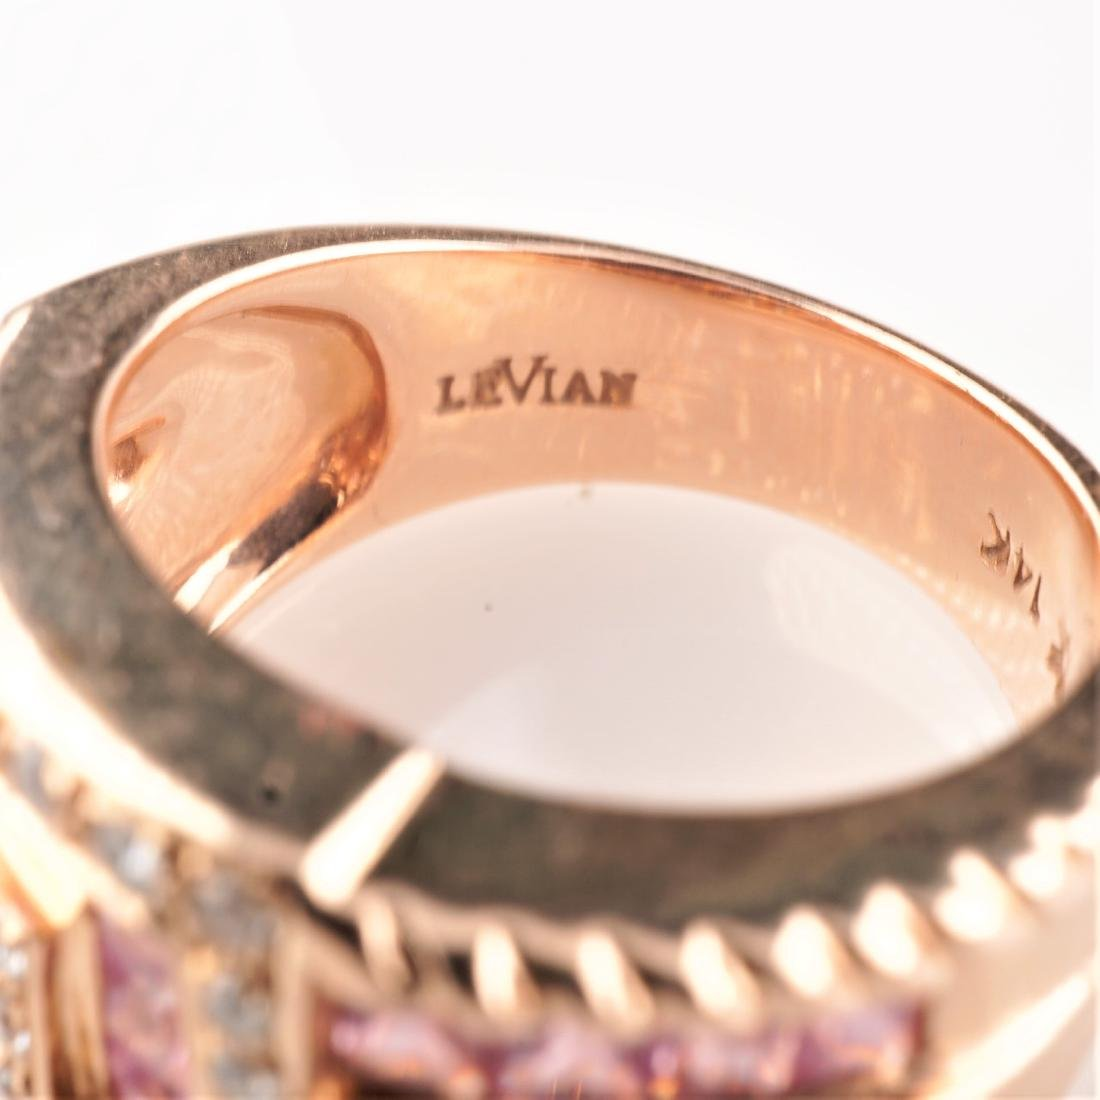 14k Rose Gold Le Vian Diamond and Sapphire Ring - 4